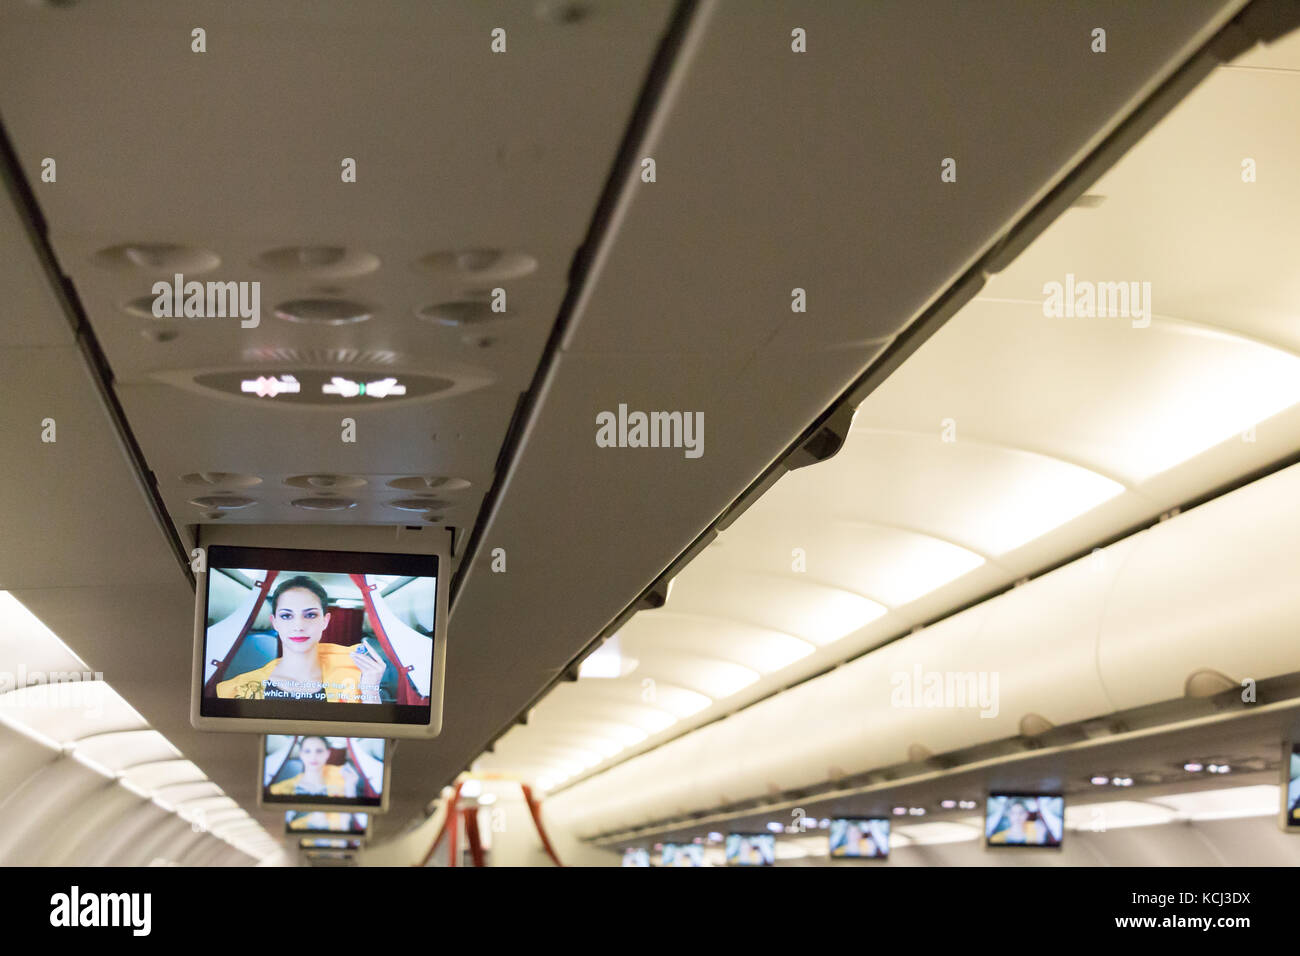 Munich, Germany, September 21th, 2017: In-flight monitors attached on the ceiling shows a flight attendant giving - Stock Image